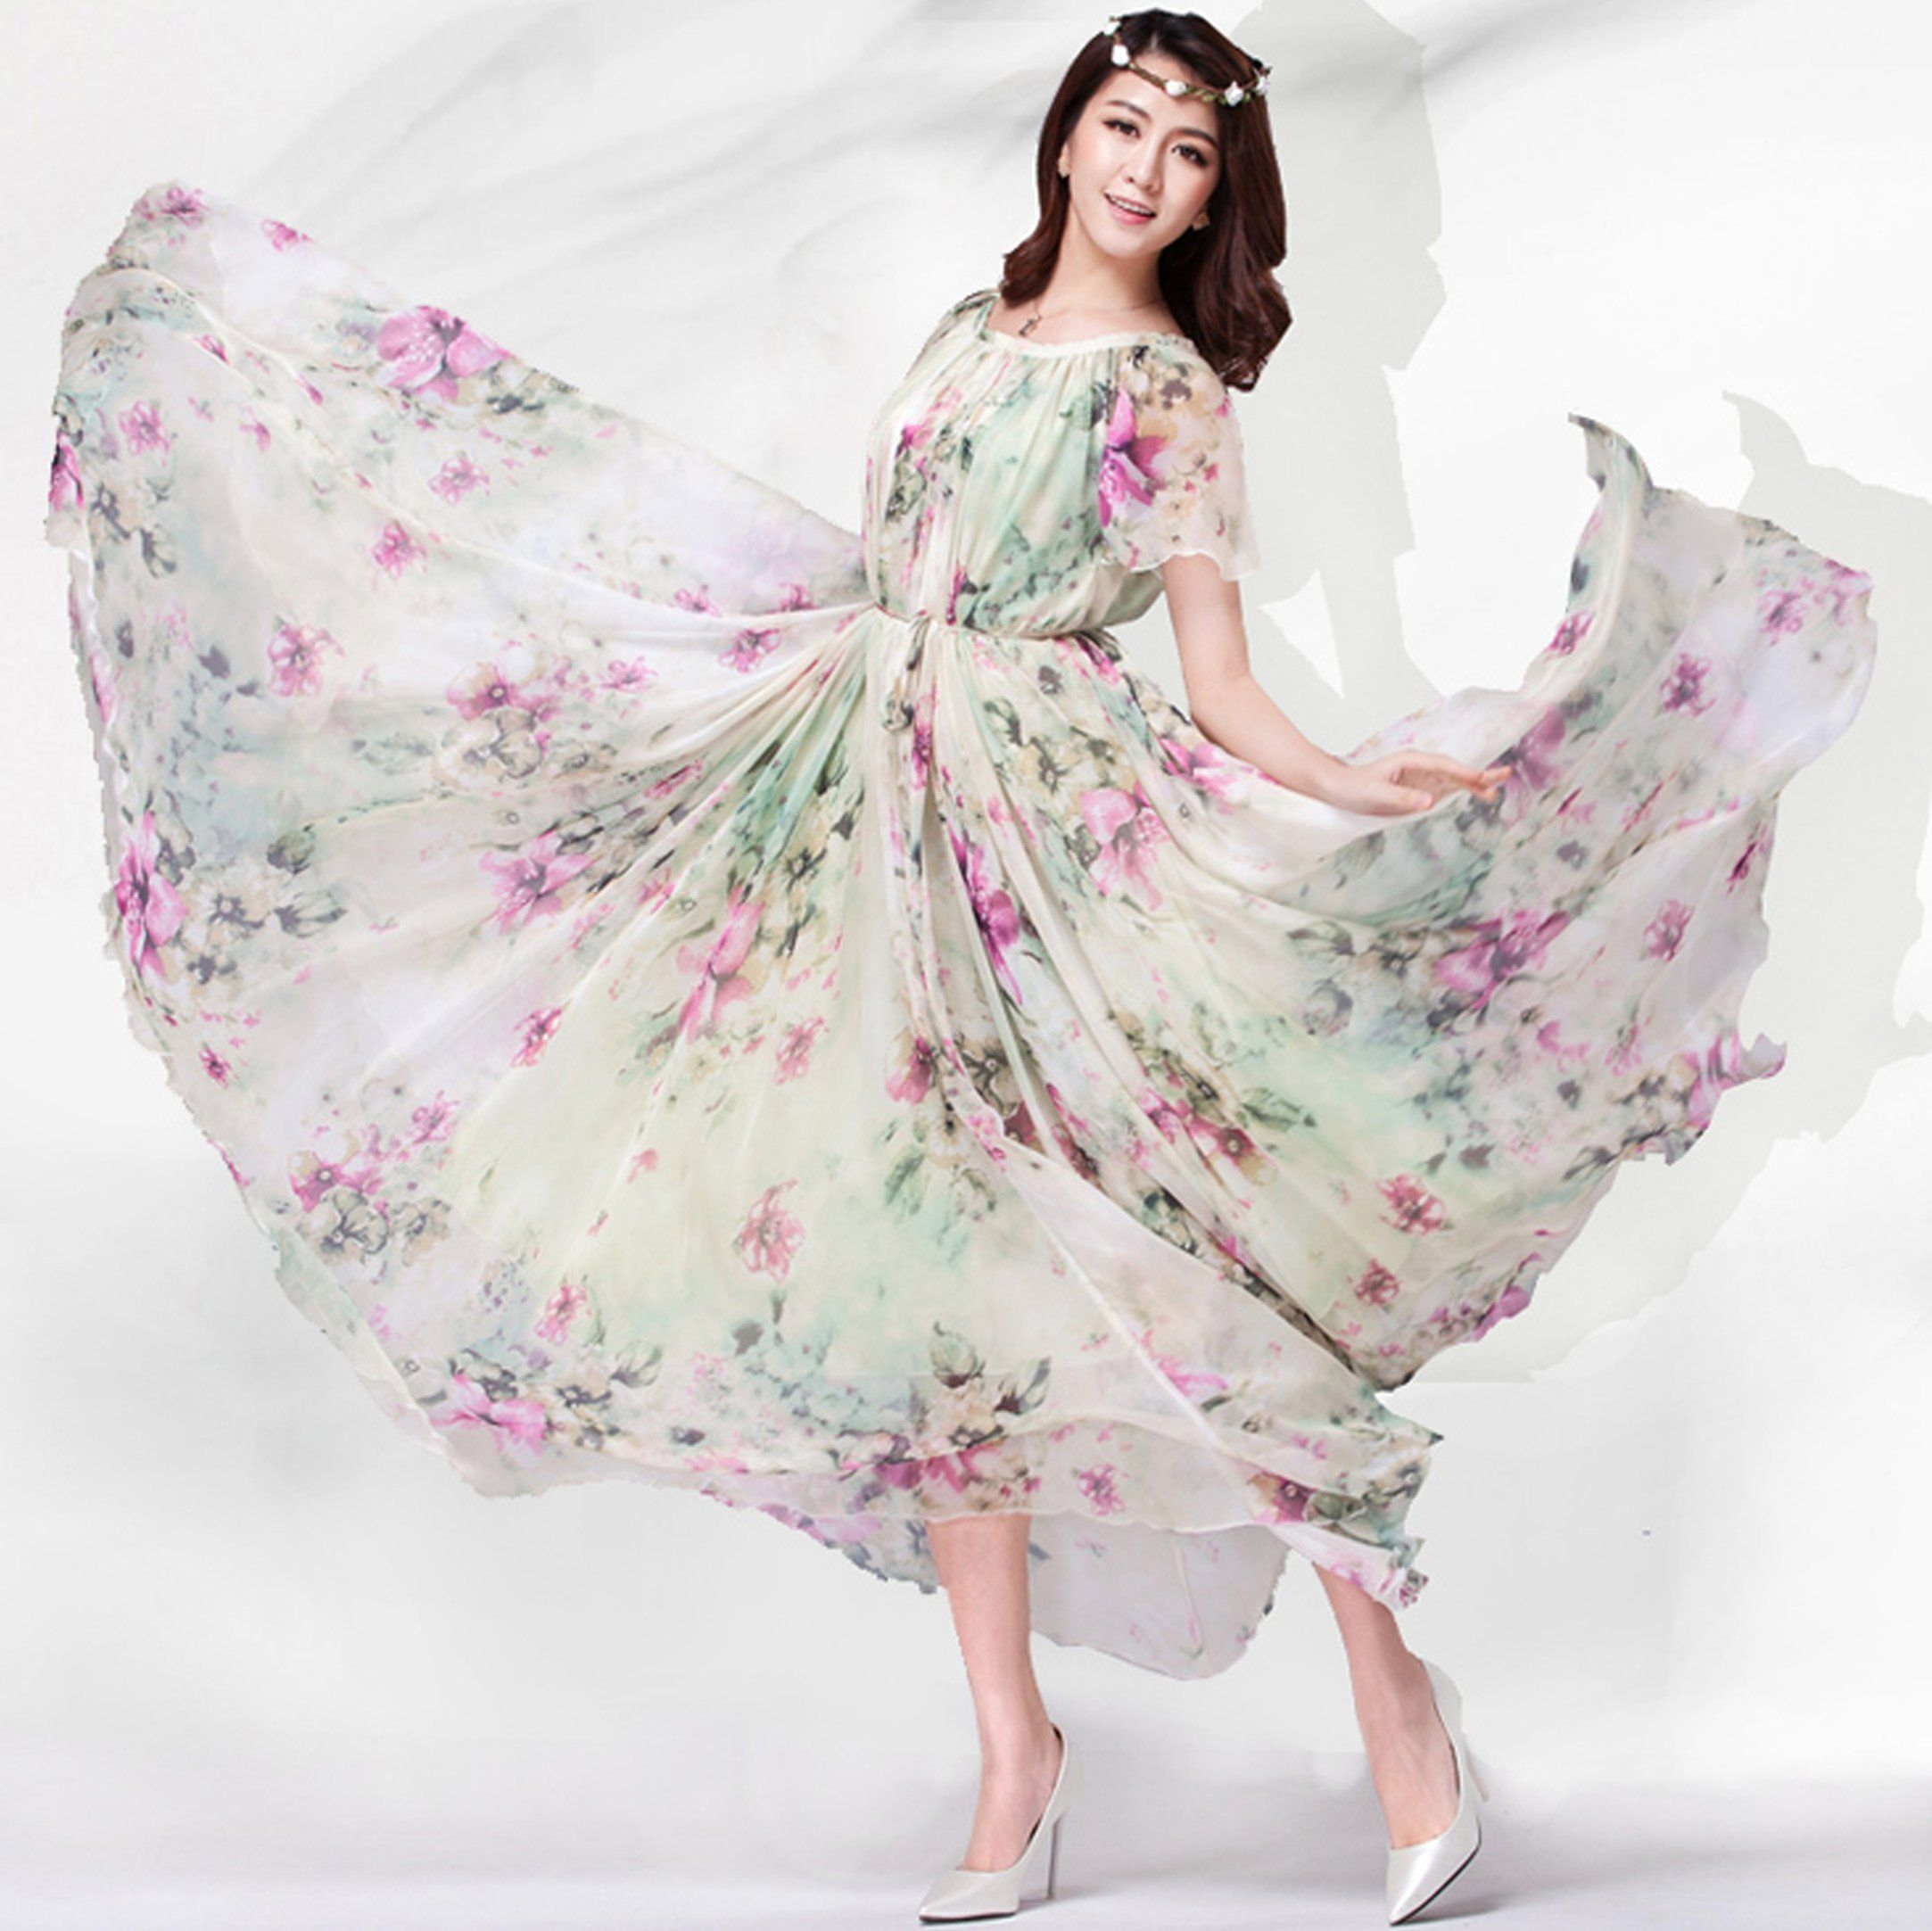 cb601258800 Medeshe Women s Chiffon Butterfly Sleeves Bridesmaid Holiday Beach Floral  Dress Sundress  Amazon.ca  Clothing   Accessories